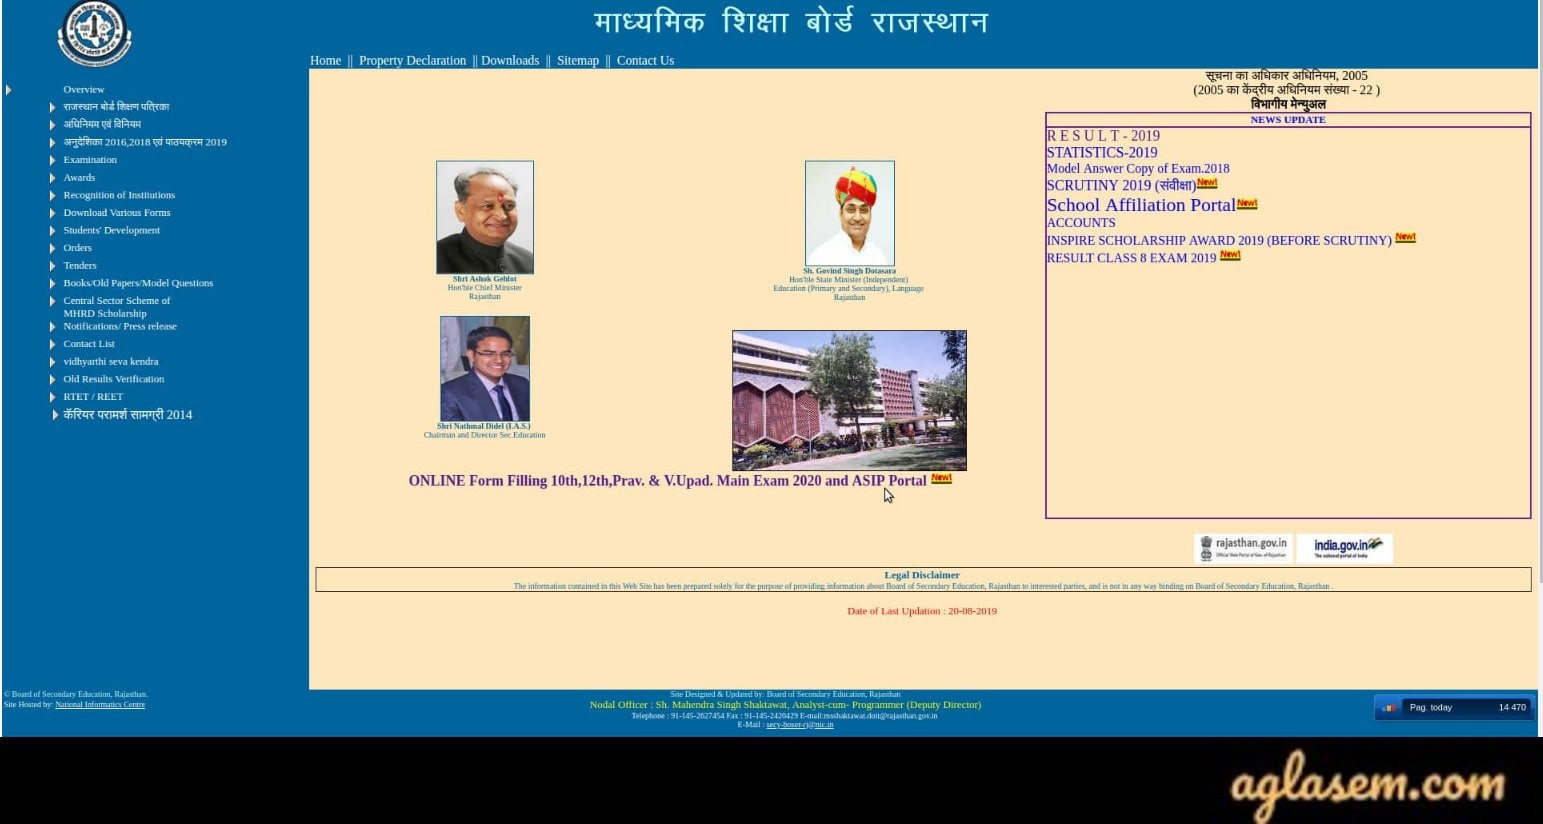 RBSE 12th Exam Date 2020